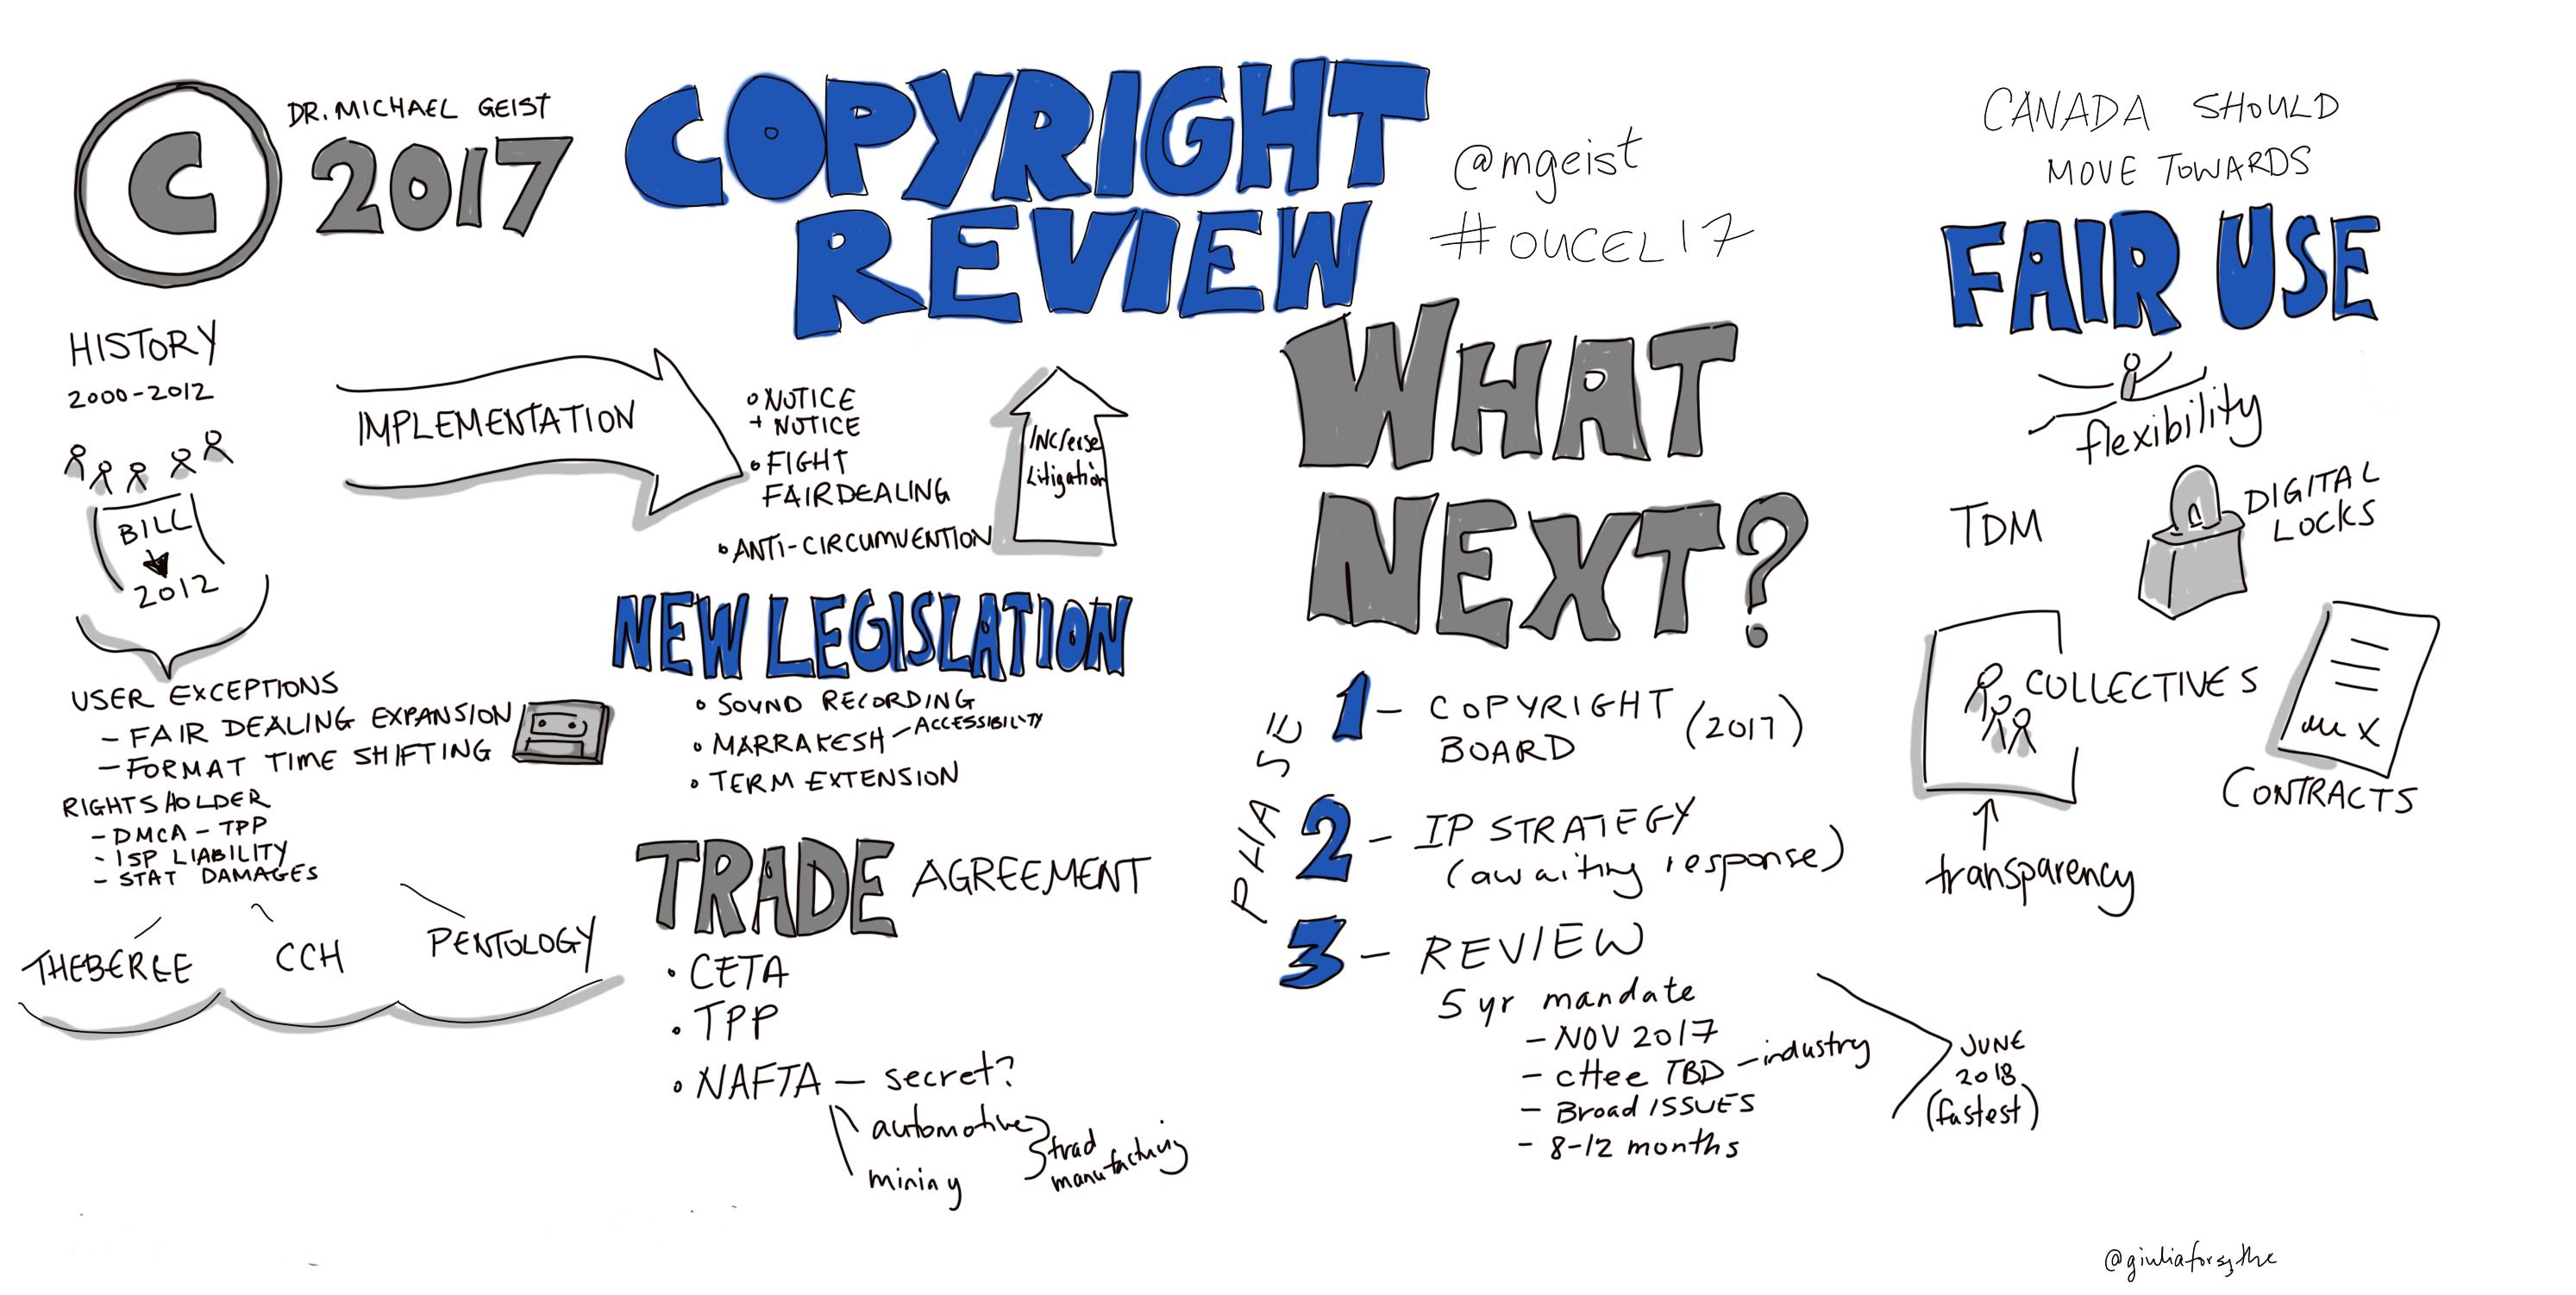 Copyright in Canada 2017 Legislative Review: overview by @mgeist at #oucel17 #viznotes